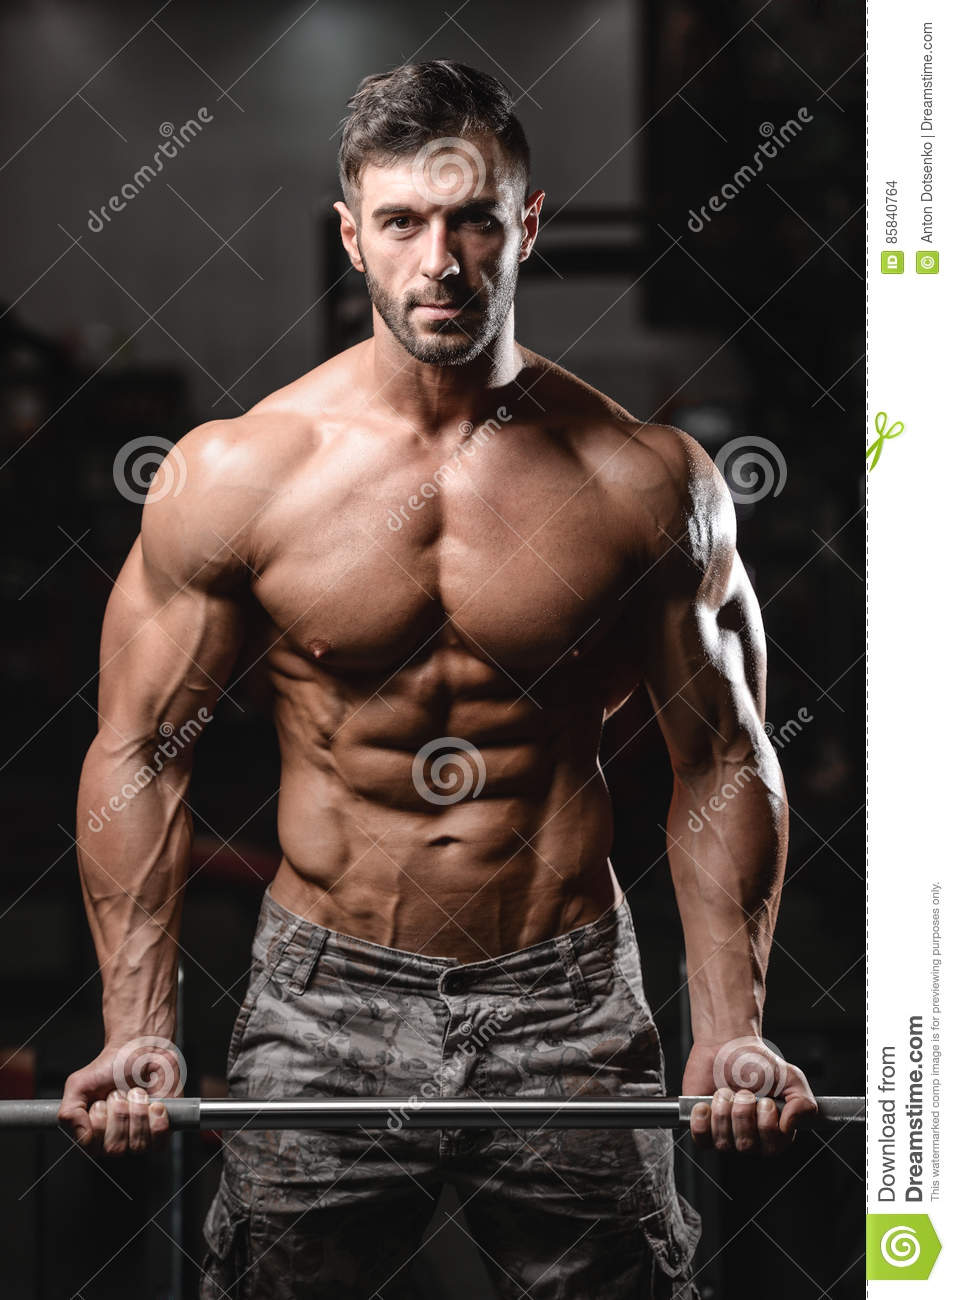 Strong and handsome athletic young man muscles abs and biceps